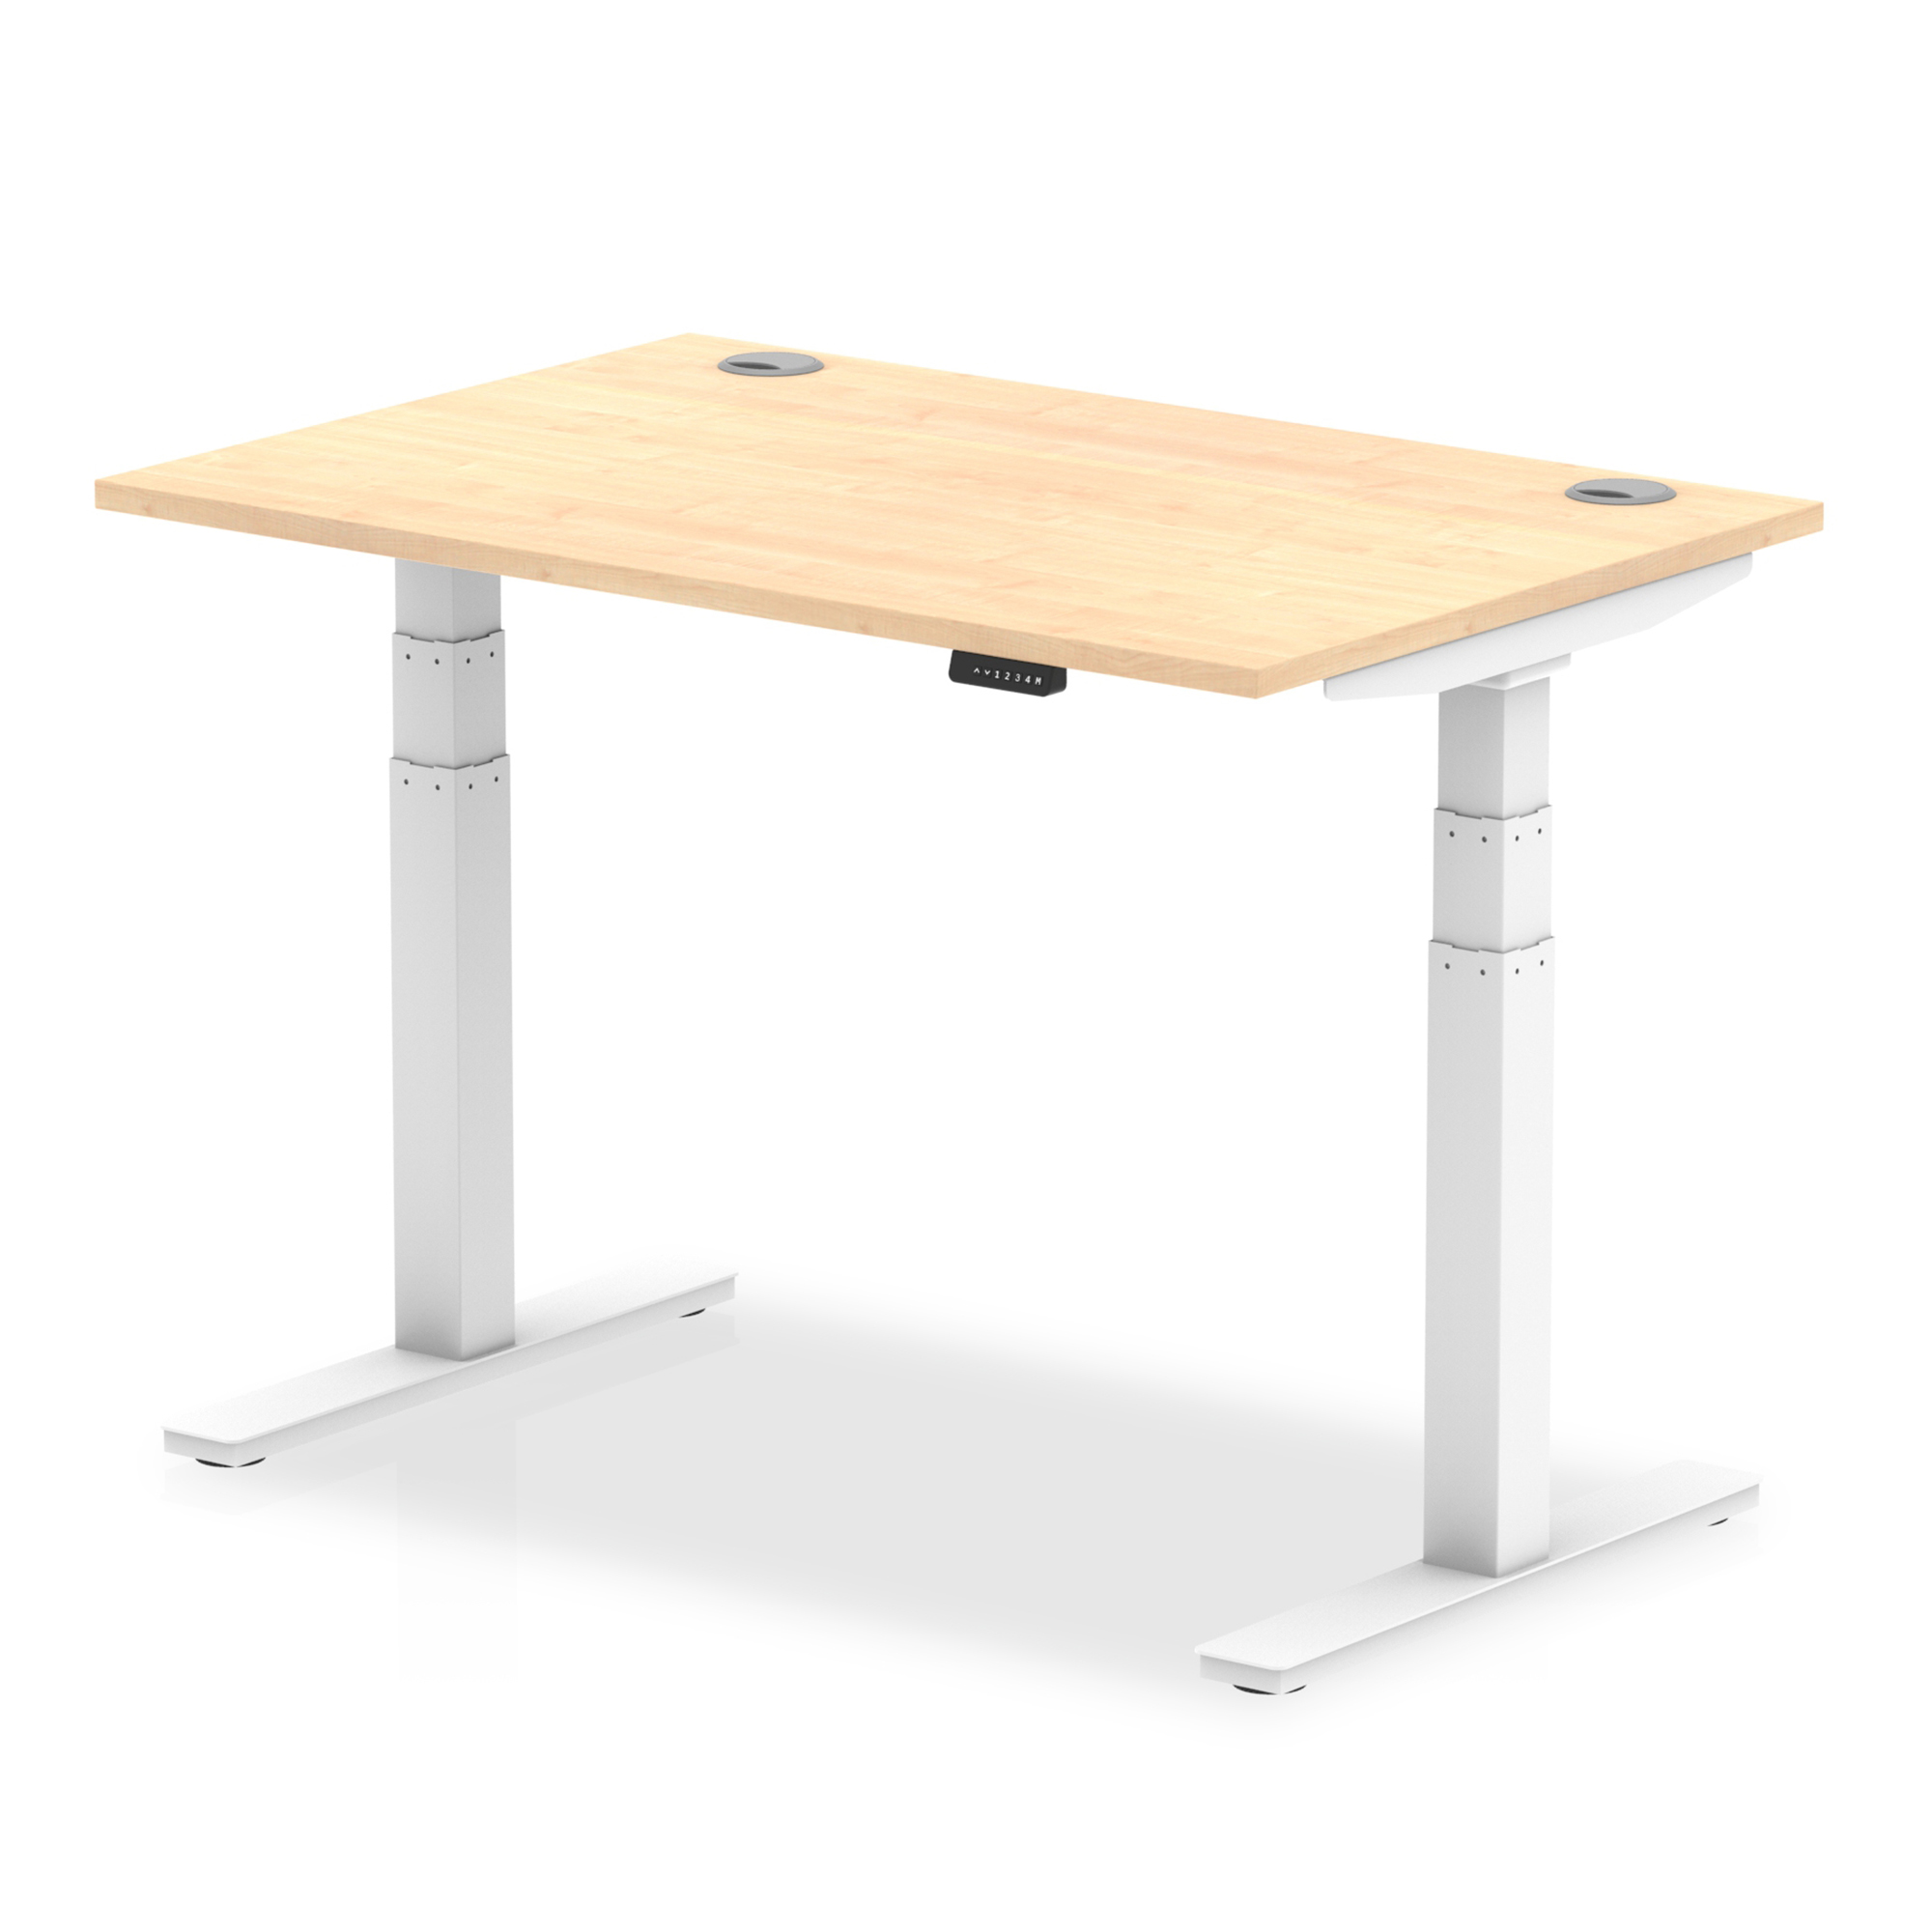 Trexus Sit Stand Desk With Cable Ports White Legs 1200x800mm Maple Ref HA01113